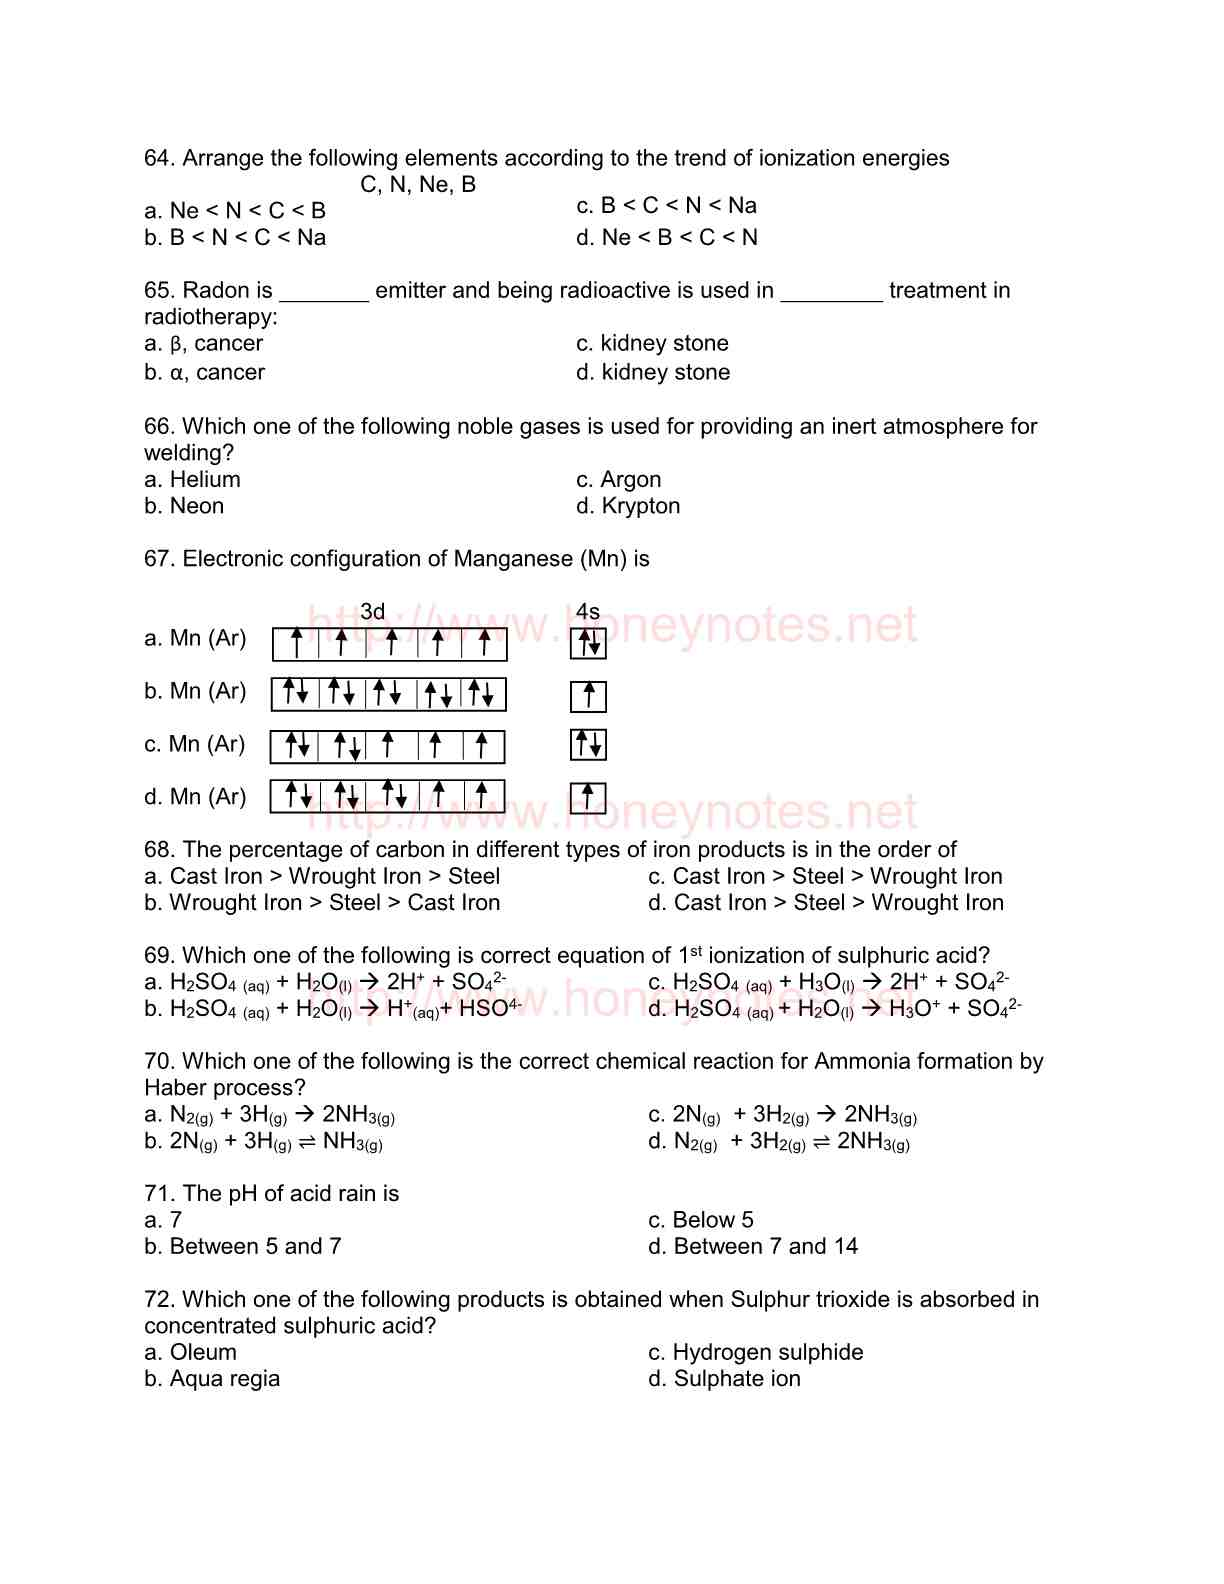 Entry test mcqs for medical, Chemistry entry test mcqs for engineering, entry test mcqs for medical 2014, Chemistry entry test papers, mcat Chemistry mcqs pdf, mcat mcqs of Chemistry 2014, mcat mcqs chapter wise (Chemistry), mcat mcqs 2014, entry test mcqs of Chemistry, entry test mcqs Chemistry 2014, entry test mcqs for engineering 2014, entry test mcqs for medical 2014, entry test mcqs for medical past papers, biology mcqs for entry test with answers, mcat mcqs biology with answers, mcat mcqs Chemistry, mcat Chemistry mcqs online test, mcat mcqs Chemistry, entry test mcqs for medical 2014, online entry test preparation mcat.